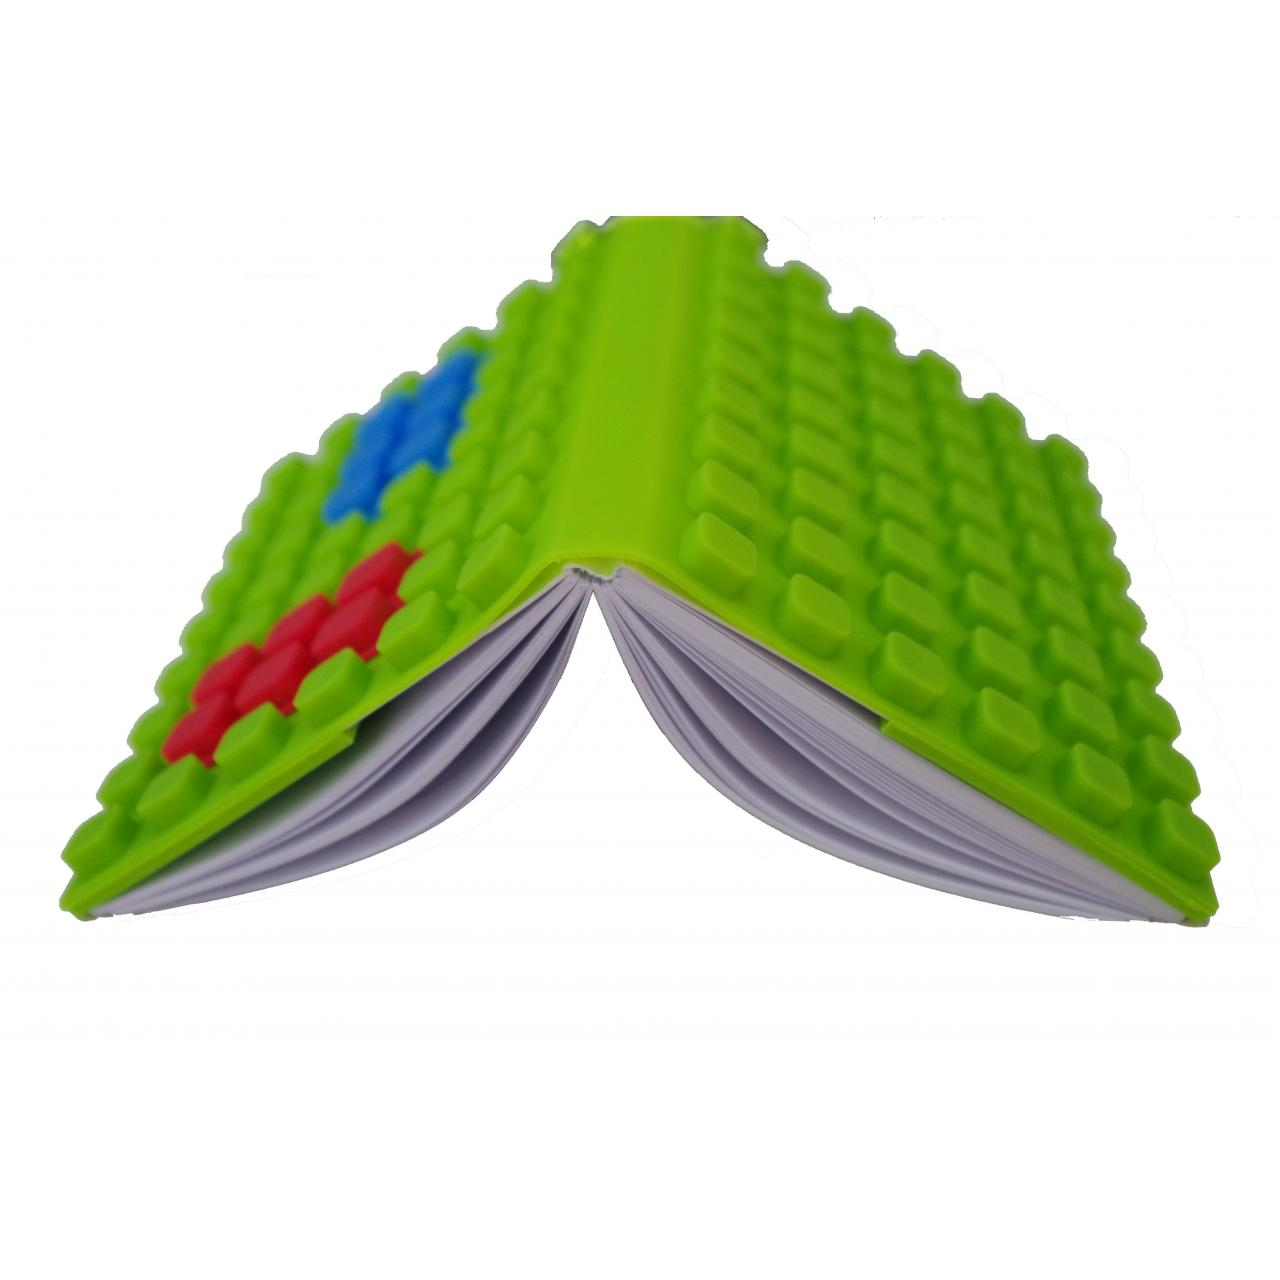 Silicone Book Cover with Block